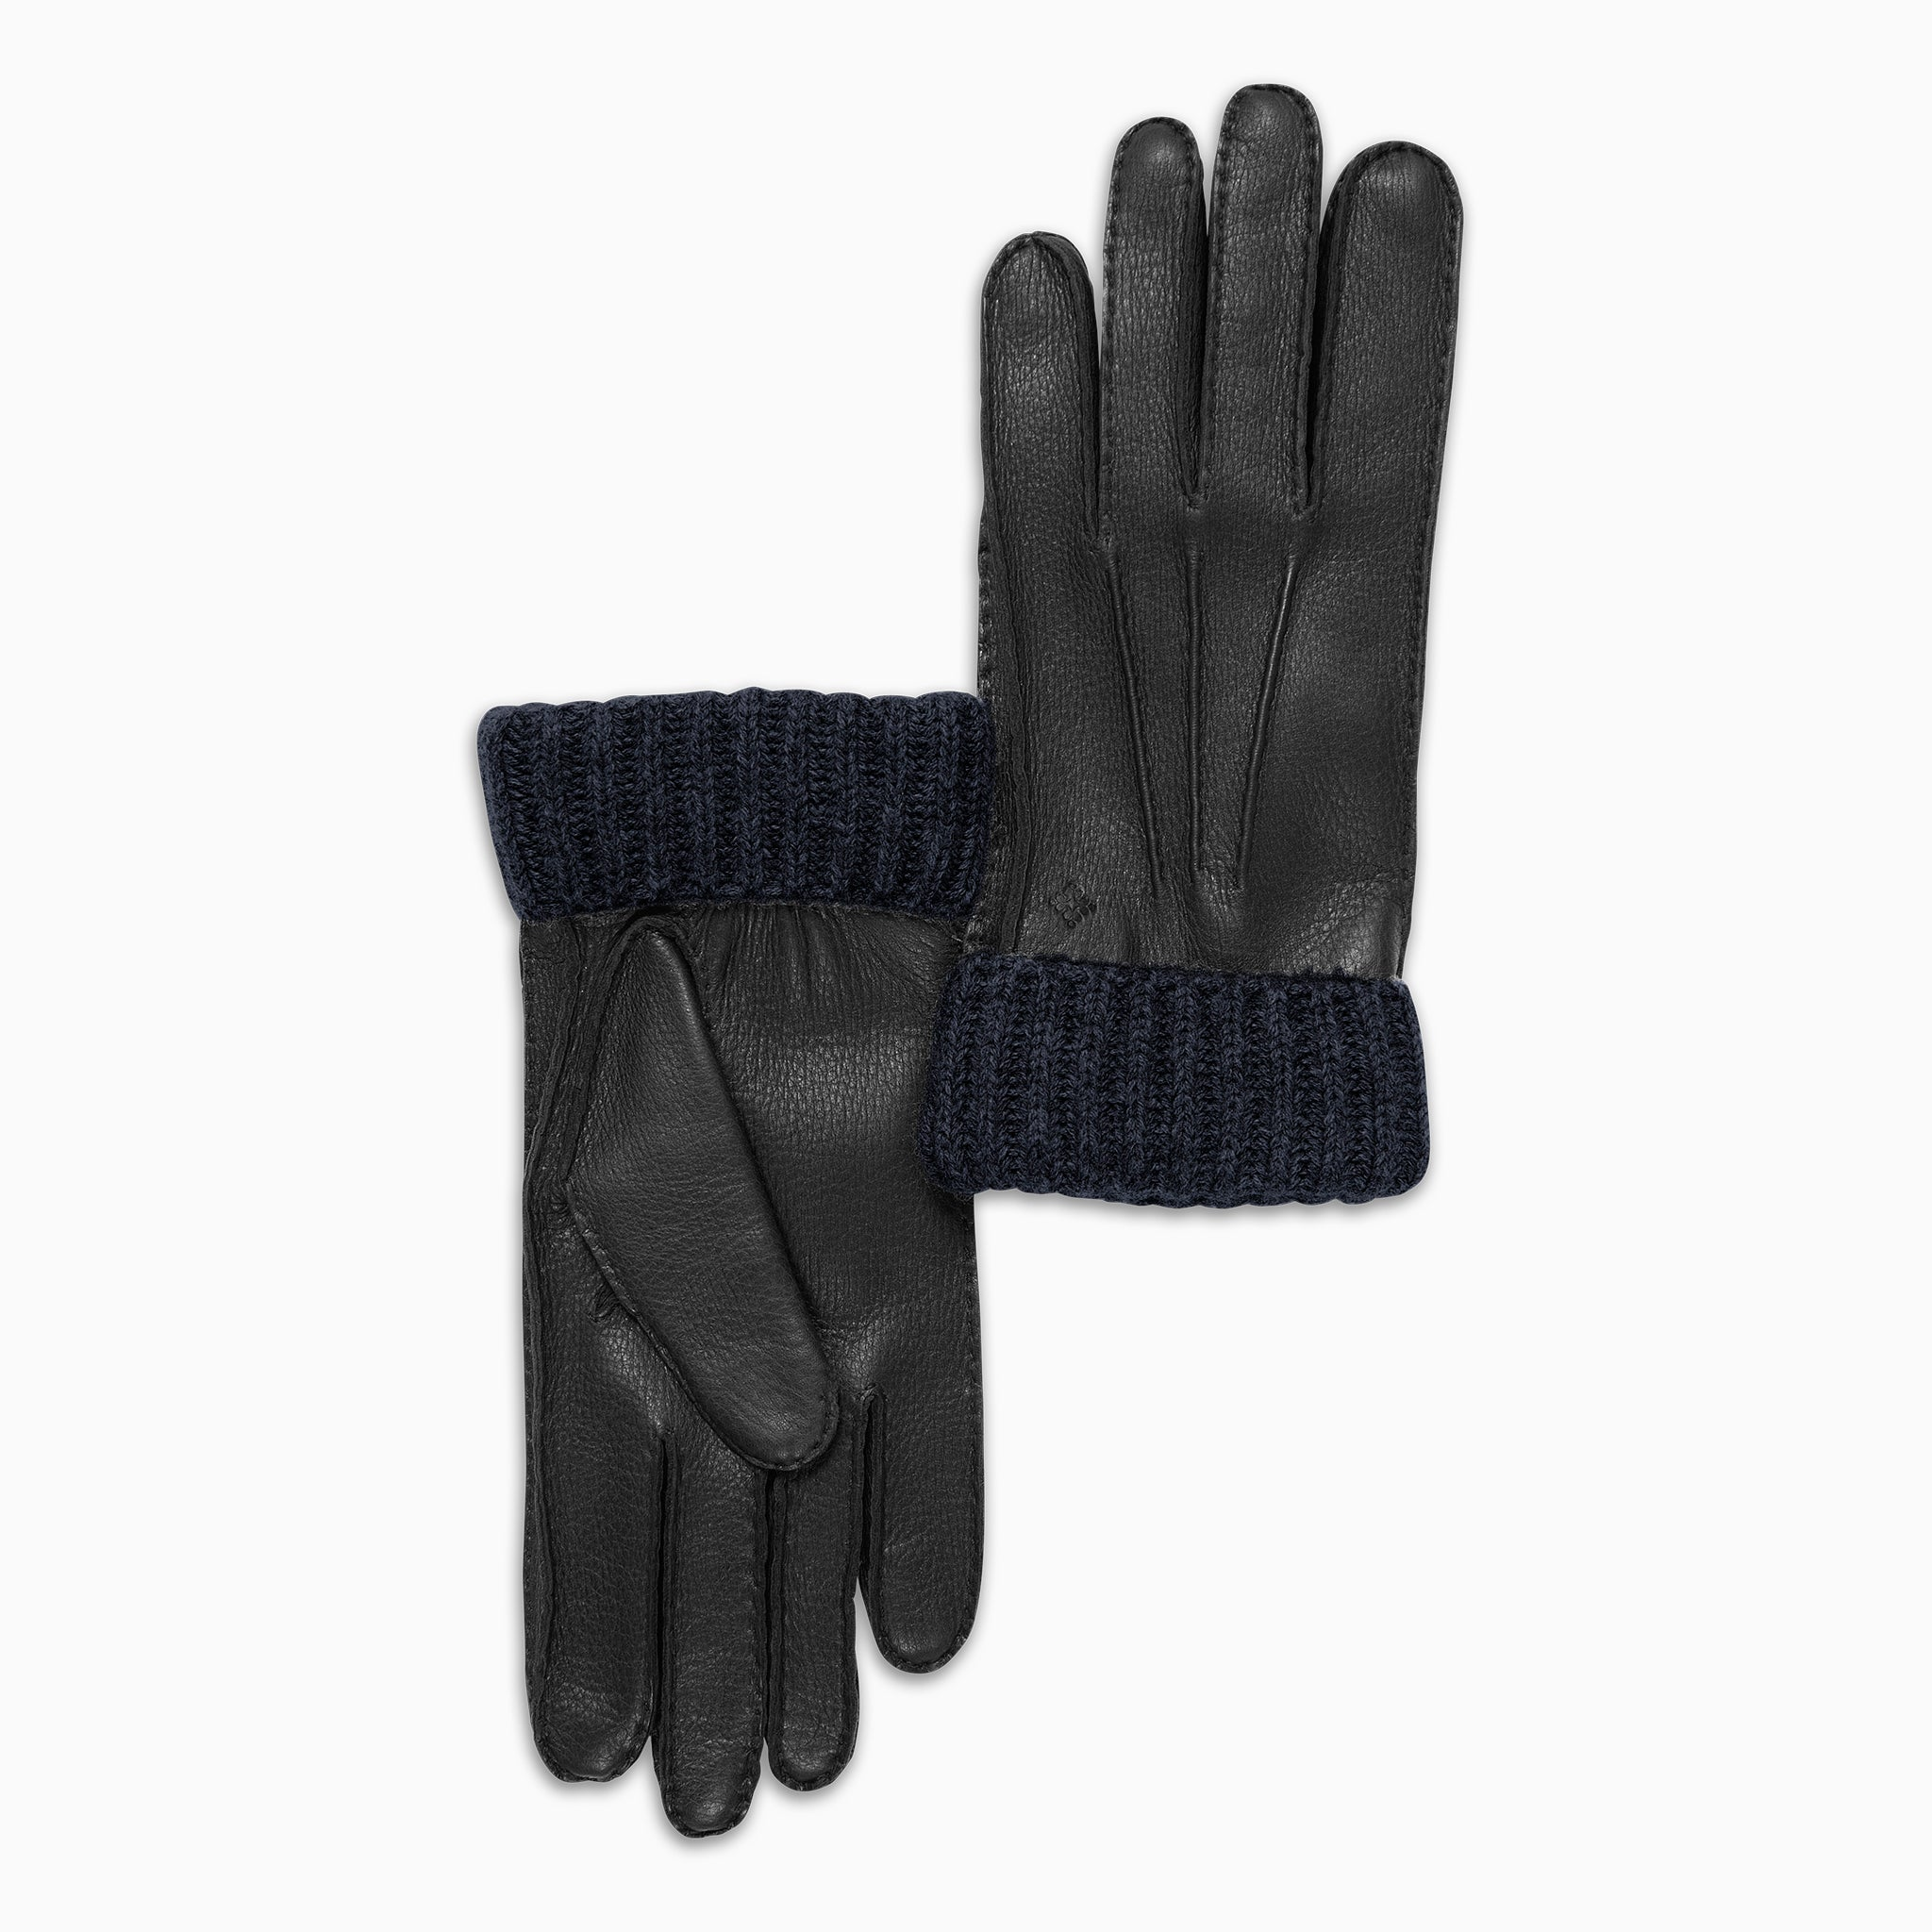 Victor 100% Soft Deer and Interior in Cashmere Gloves (black and blue)